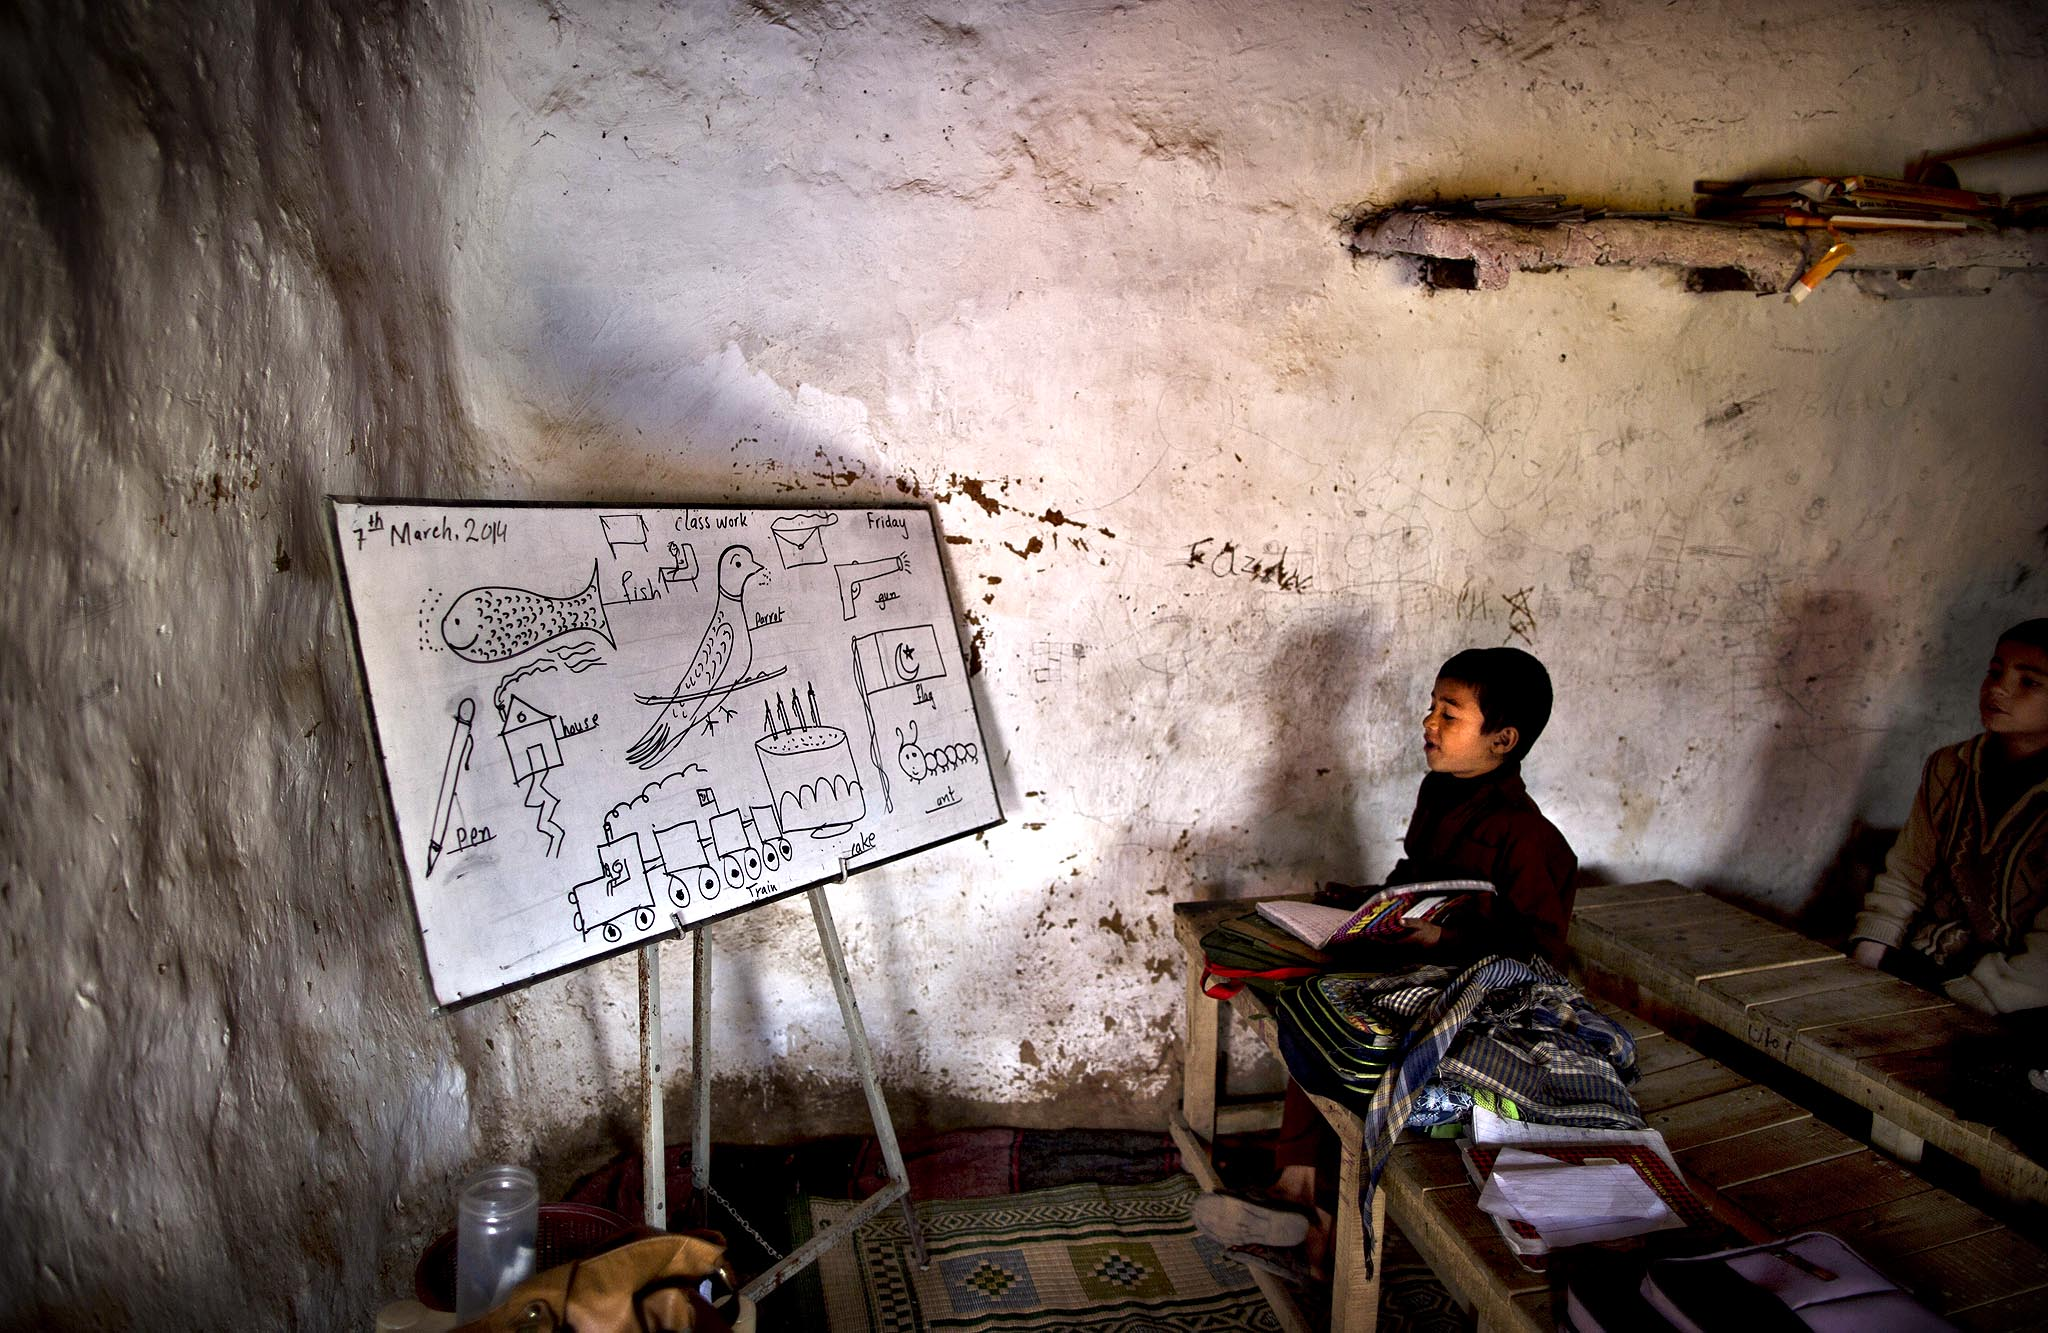 An Afghan refugee boy reads from the board while he and other schoolchildren attend their classes at their makeshift school on the outskirts of Islamabad, Pakistan, Friday, March 7, 2014.